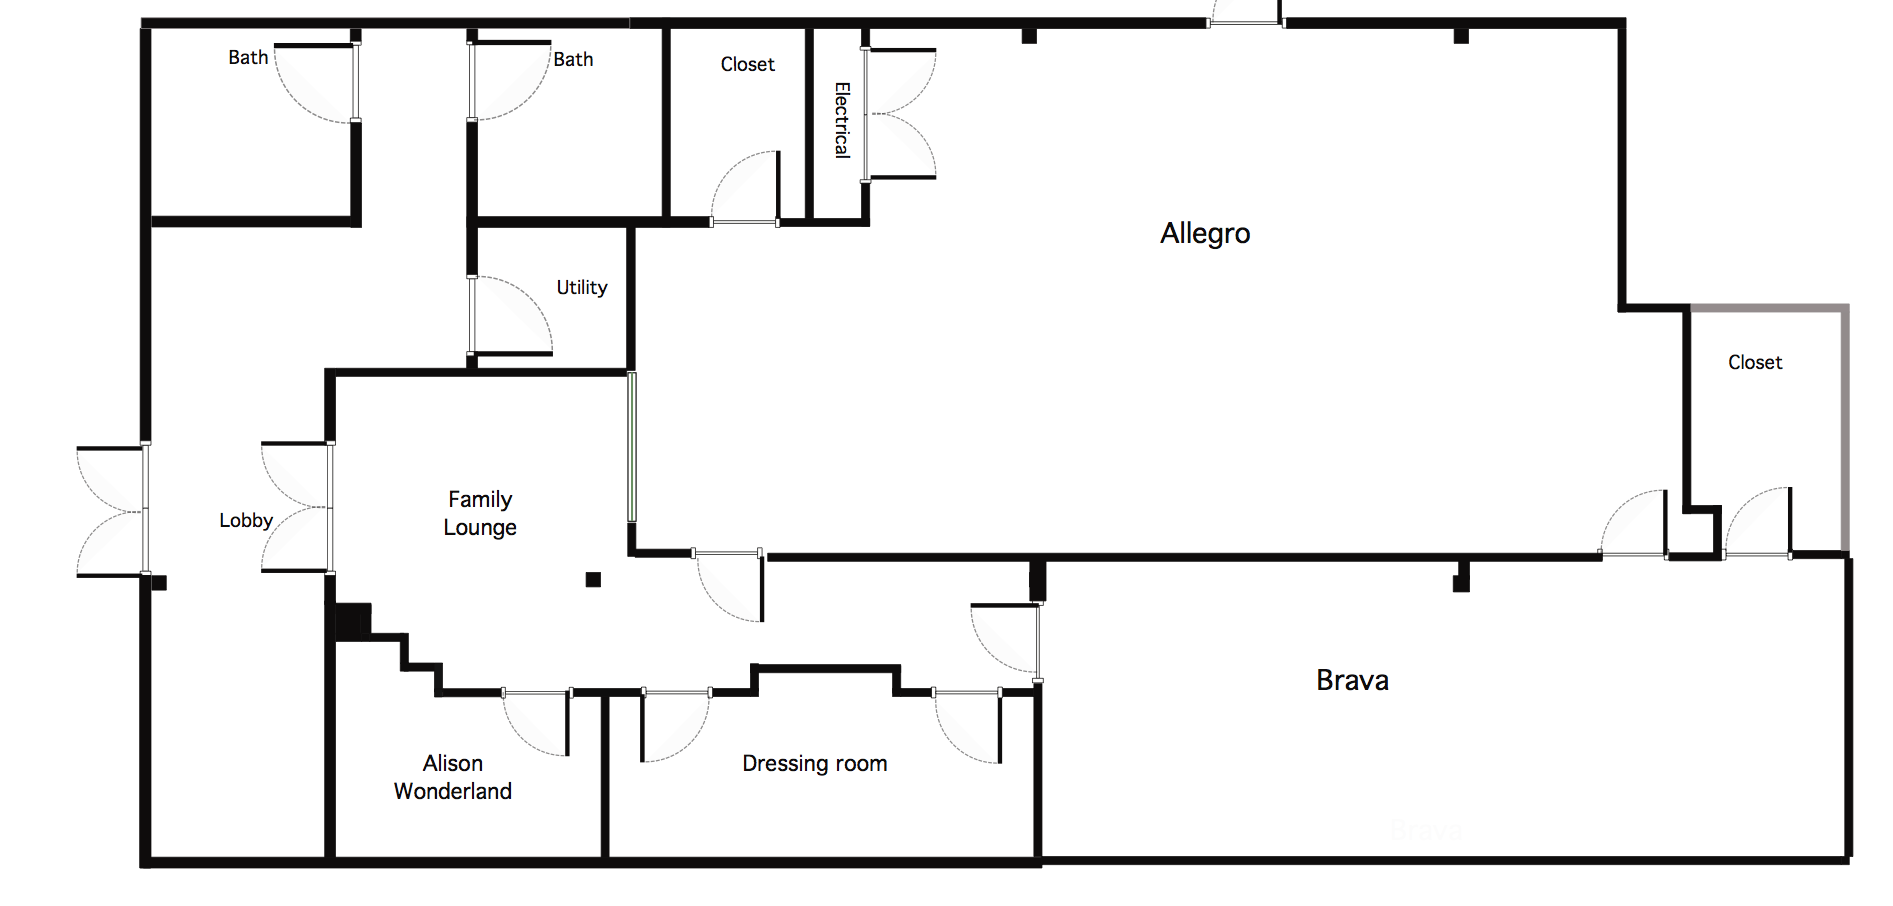 the old floor plan